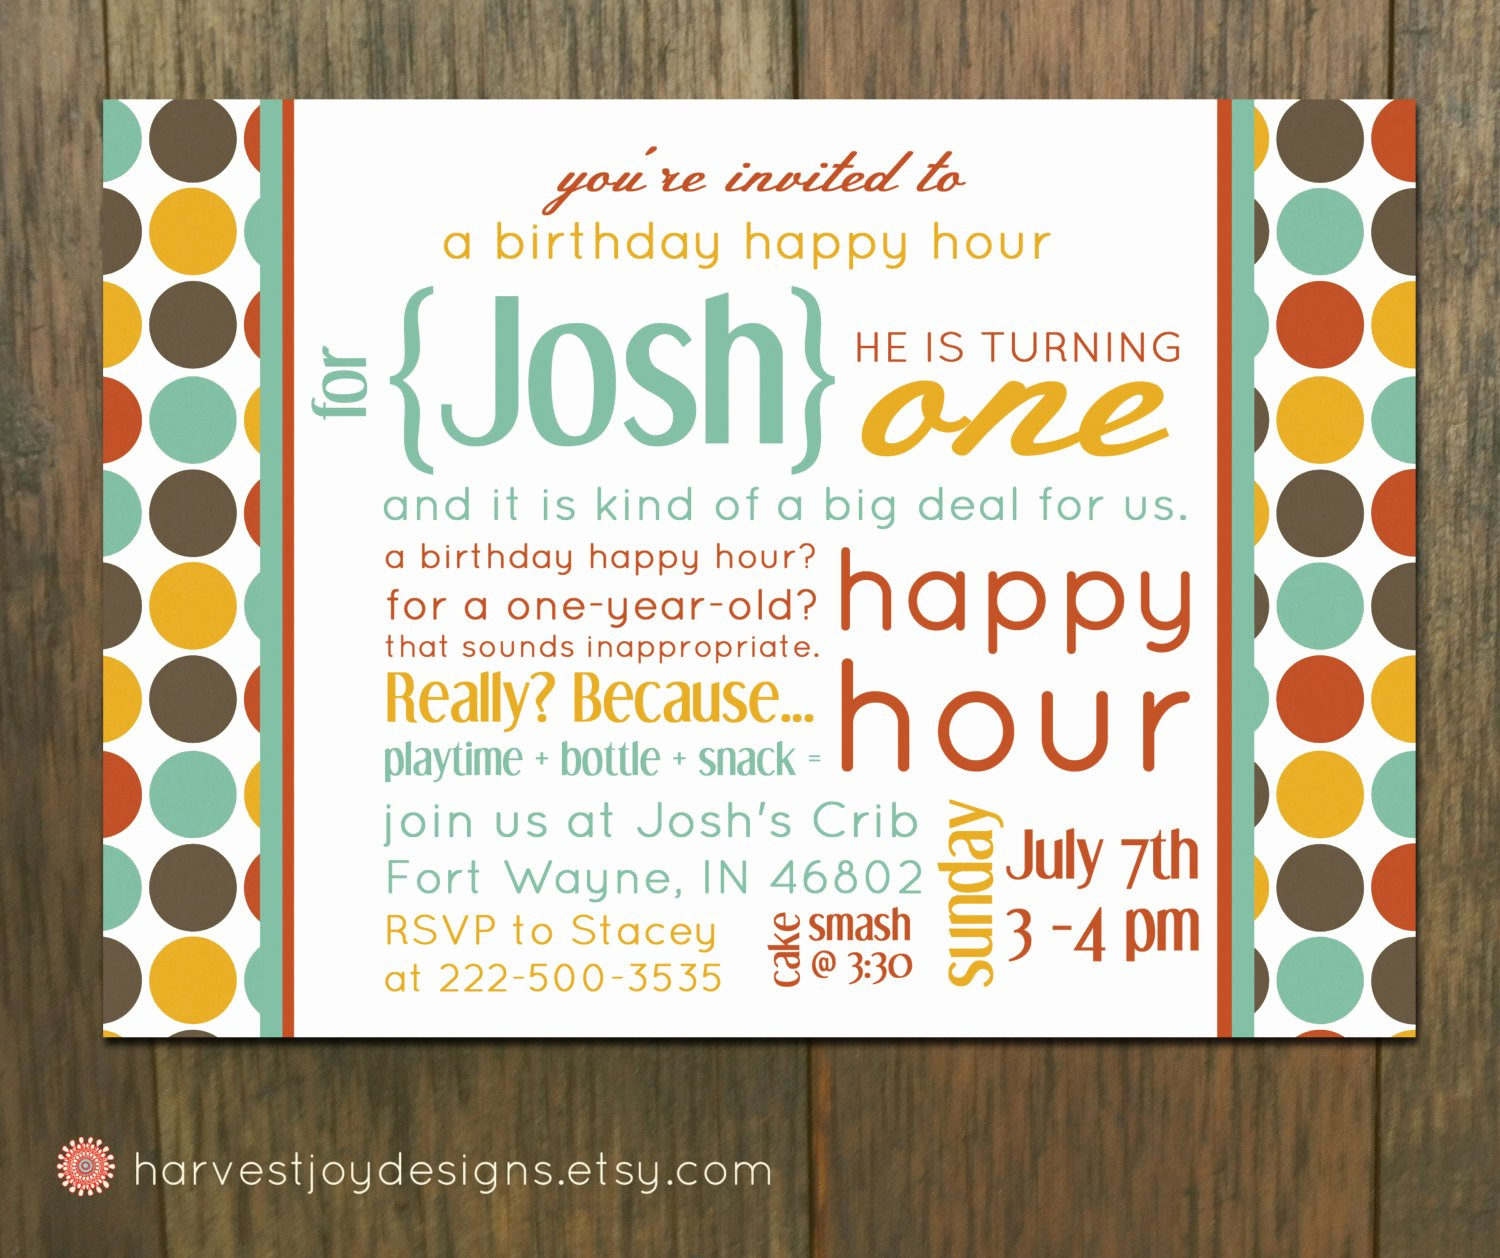 Happy Hour Invite Template Awesome Funny Simple Happy Hour Invitations for Birthday Card with